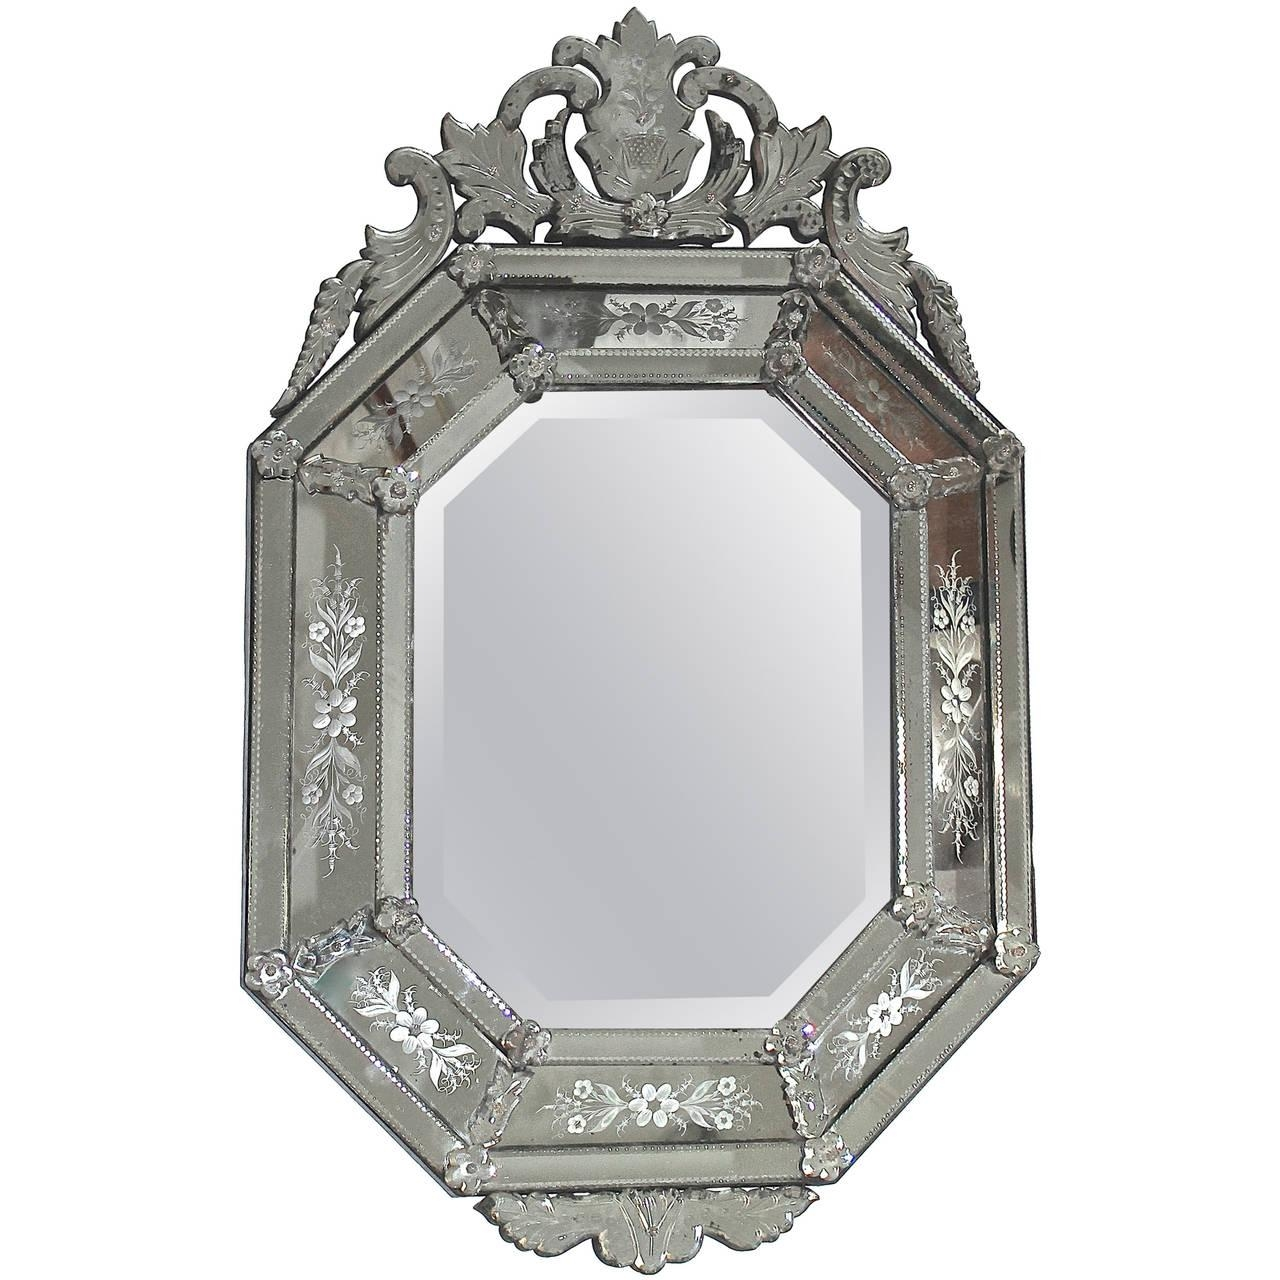 Italian Venetian Etched Glass Wall Mirror For Sale At 1Stdibs For Venetian Glass Mirrors Sale (View 9 of 20)